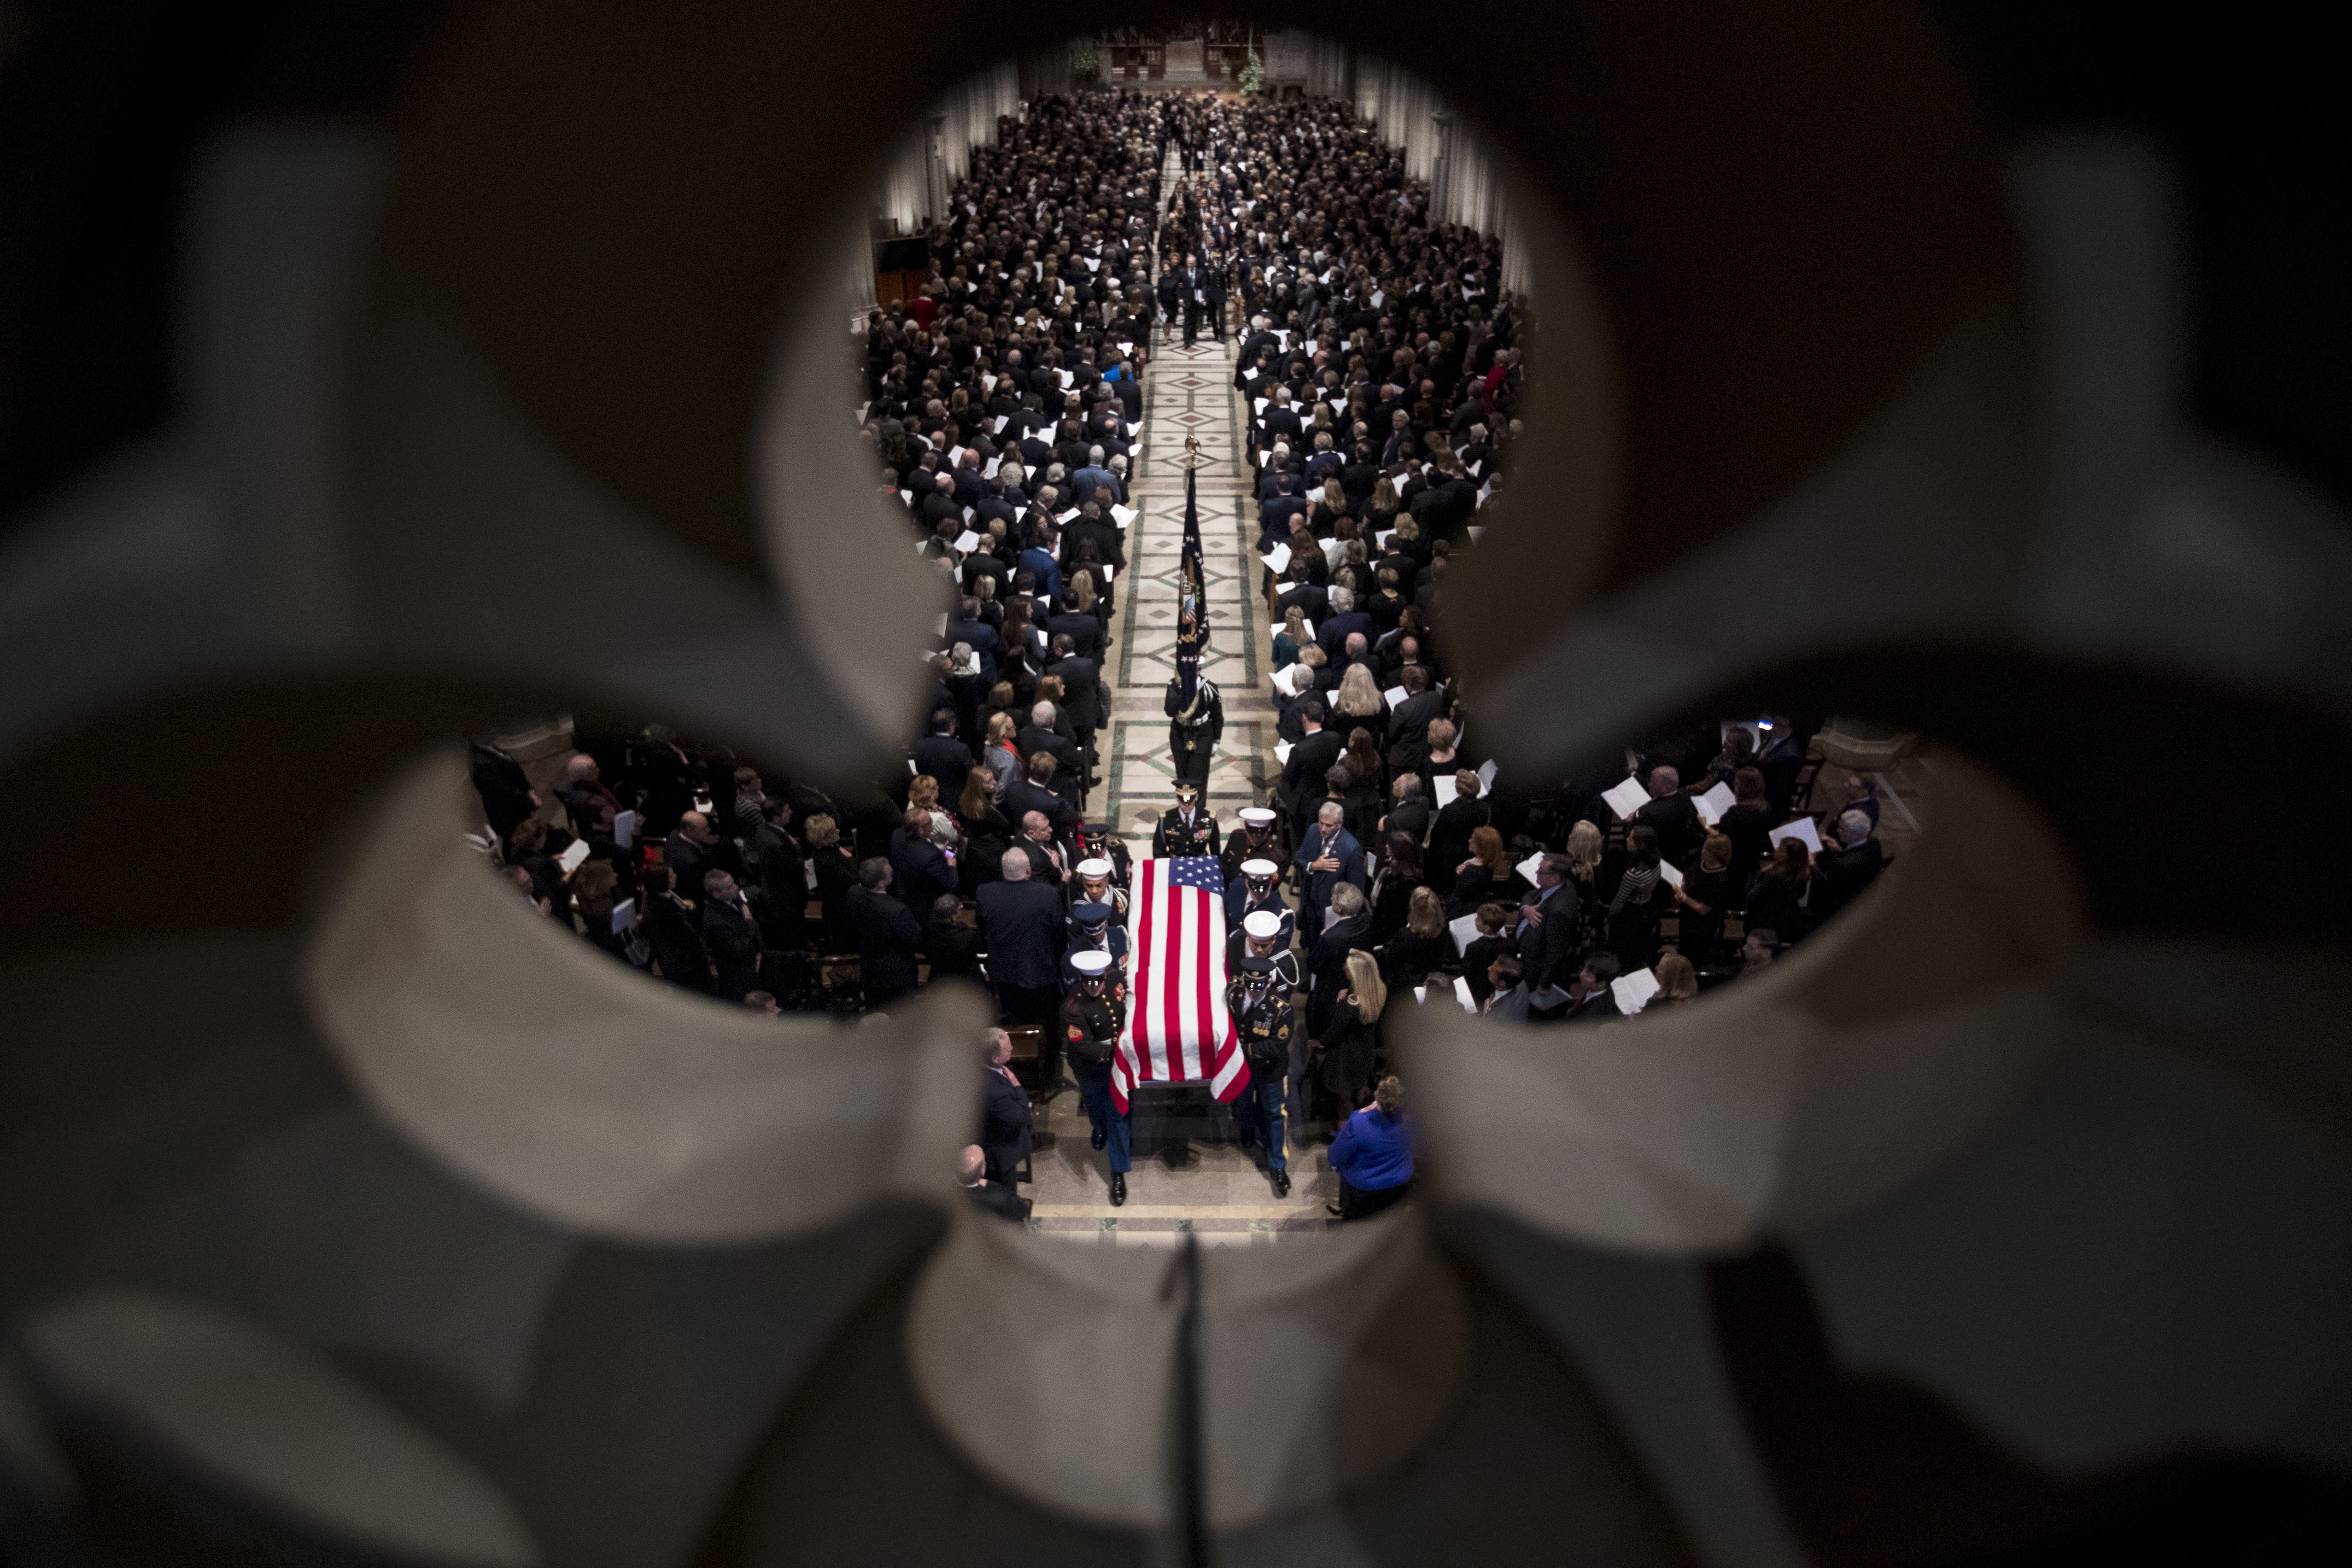 The flag-draped casket of former President George H.W. Bush is carried out by a military honor guard during a State Funeral at the National Cathedral, Wednesday, Dec. 5, 2018, in Washington. (AP Photo/Andrew Harnik, Pool)